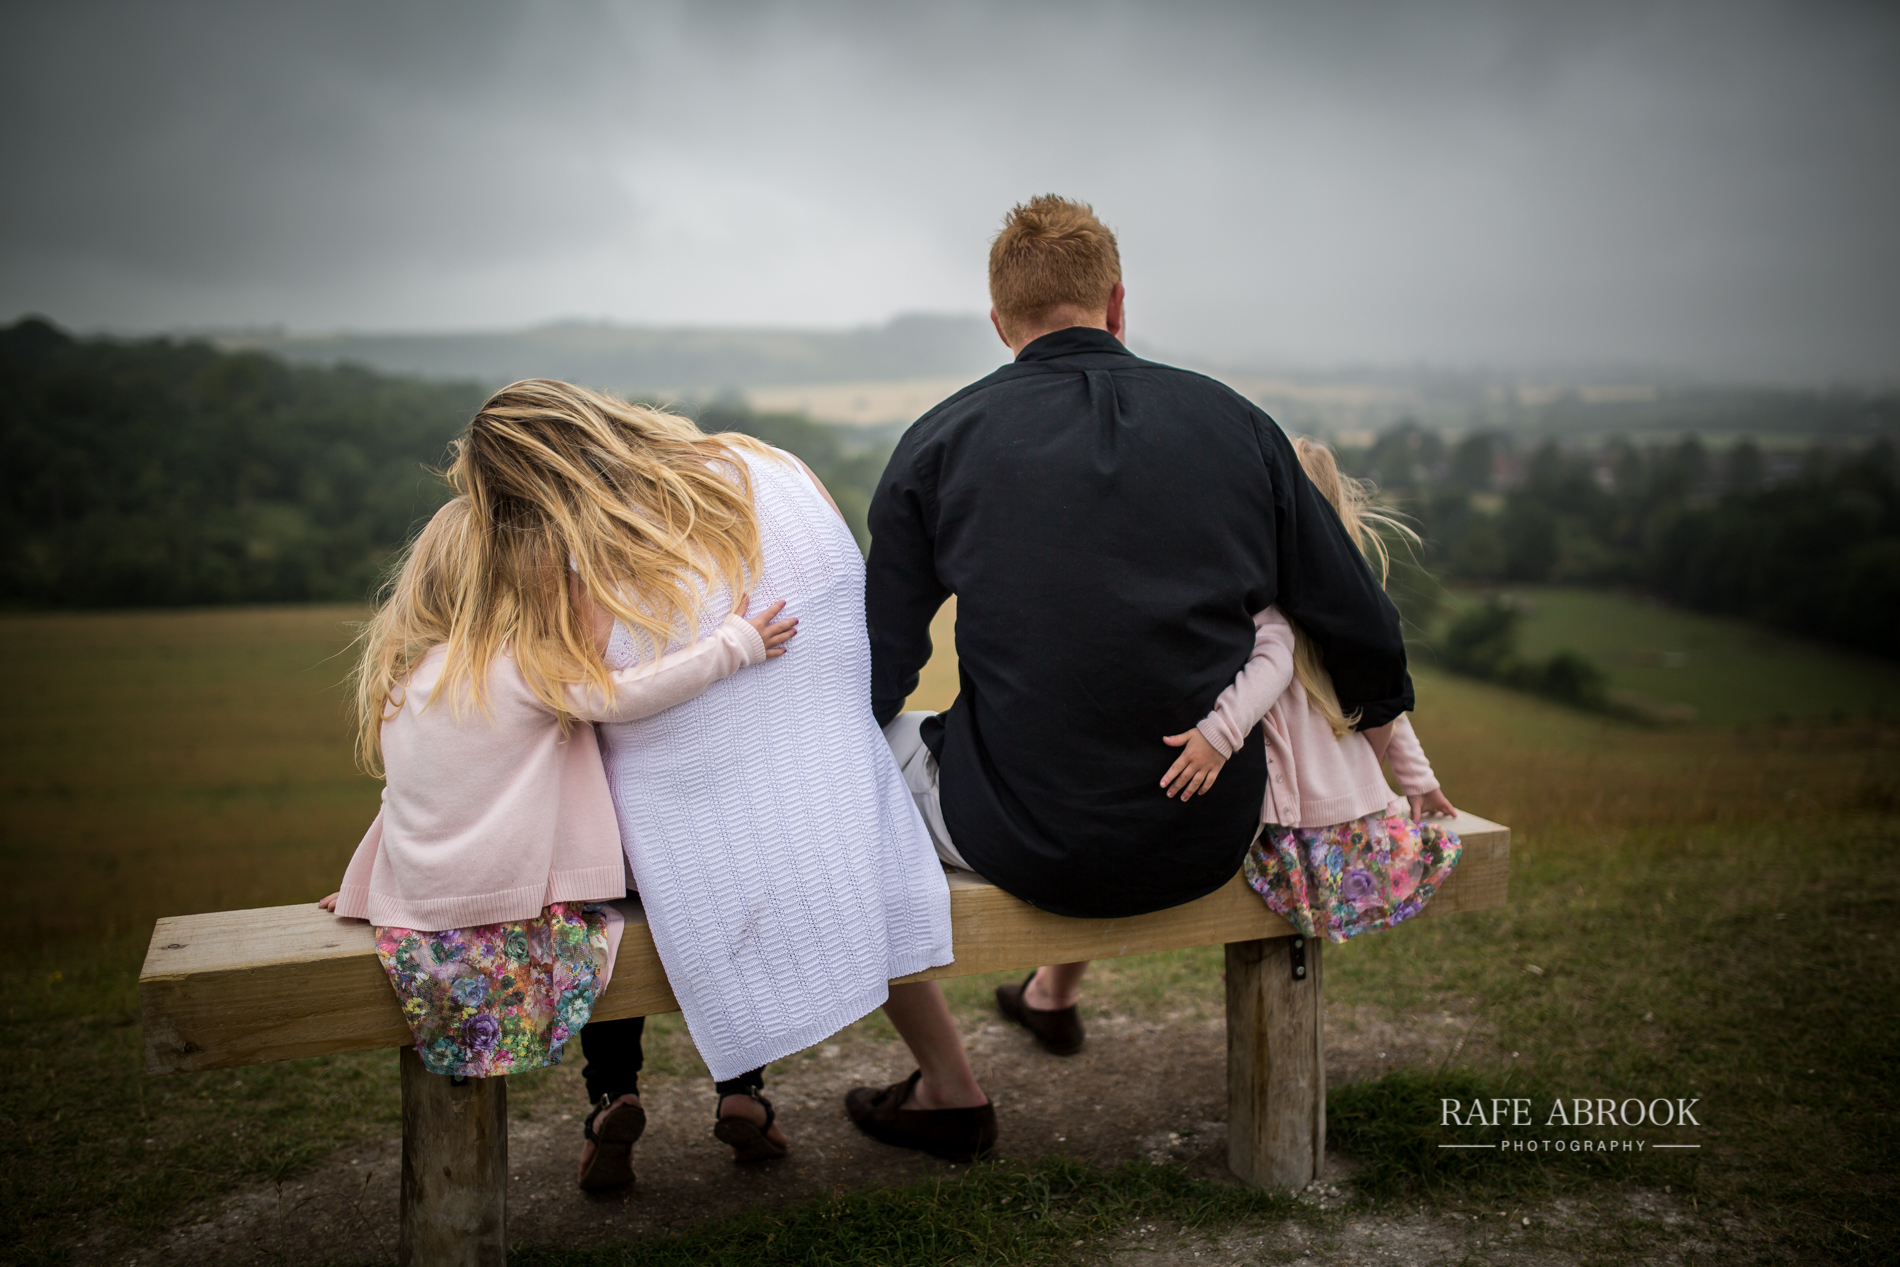 lisa & danny engagement shoot barton hills barton-le-clay bedfordshire-1031.jpg